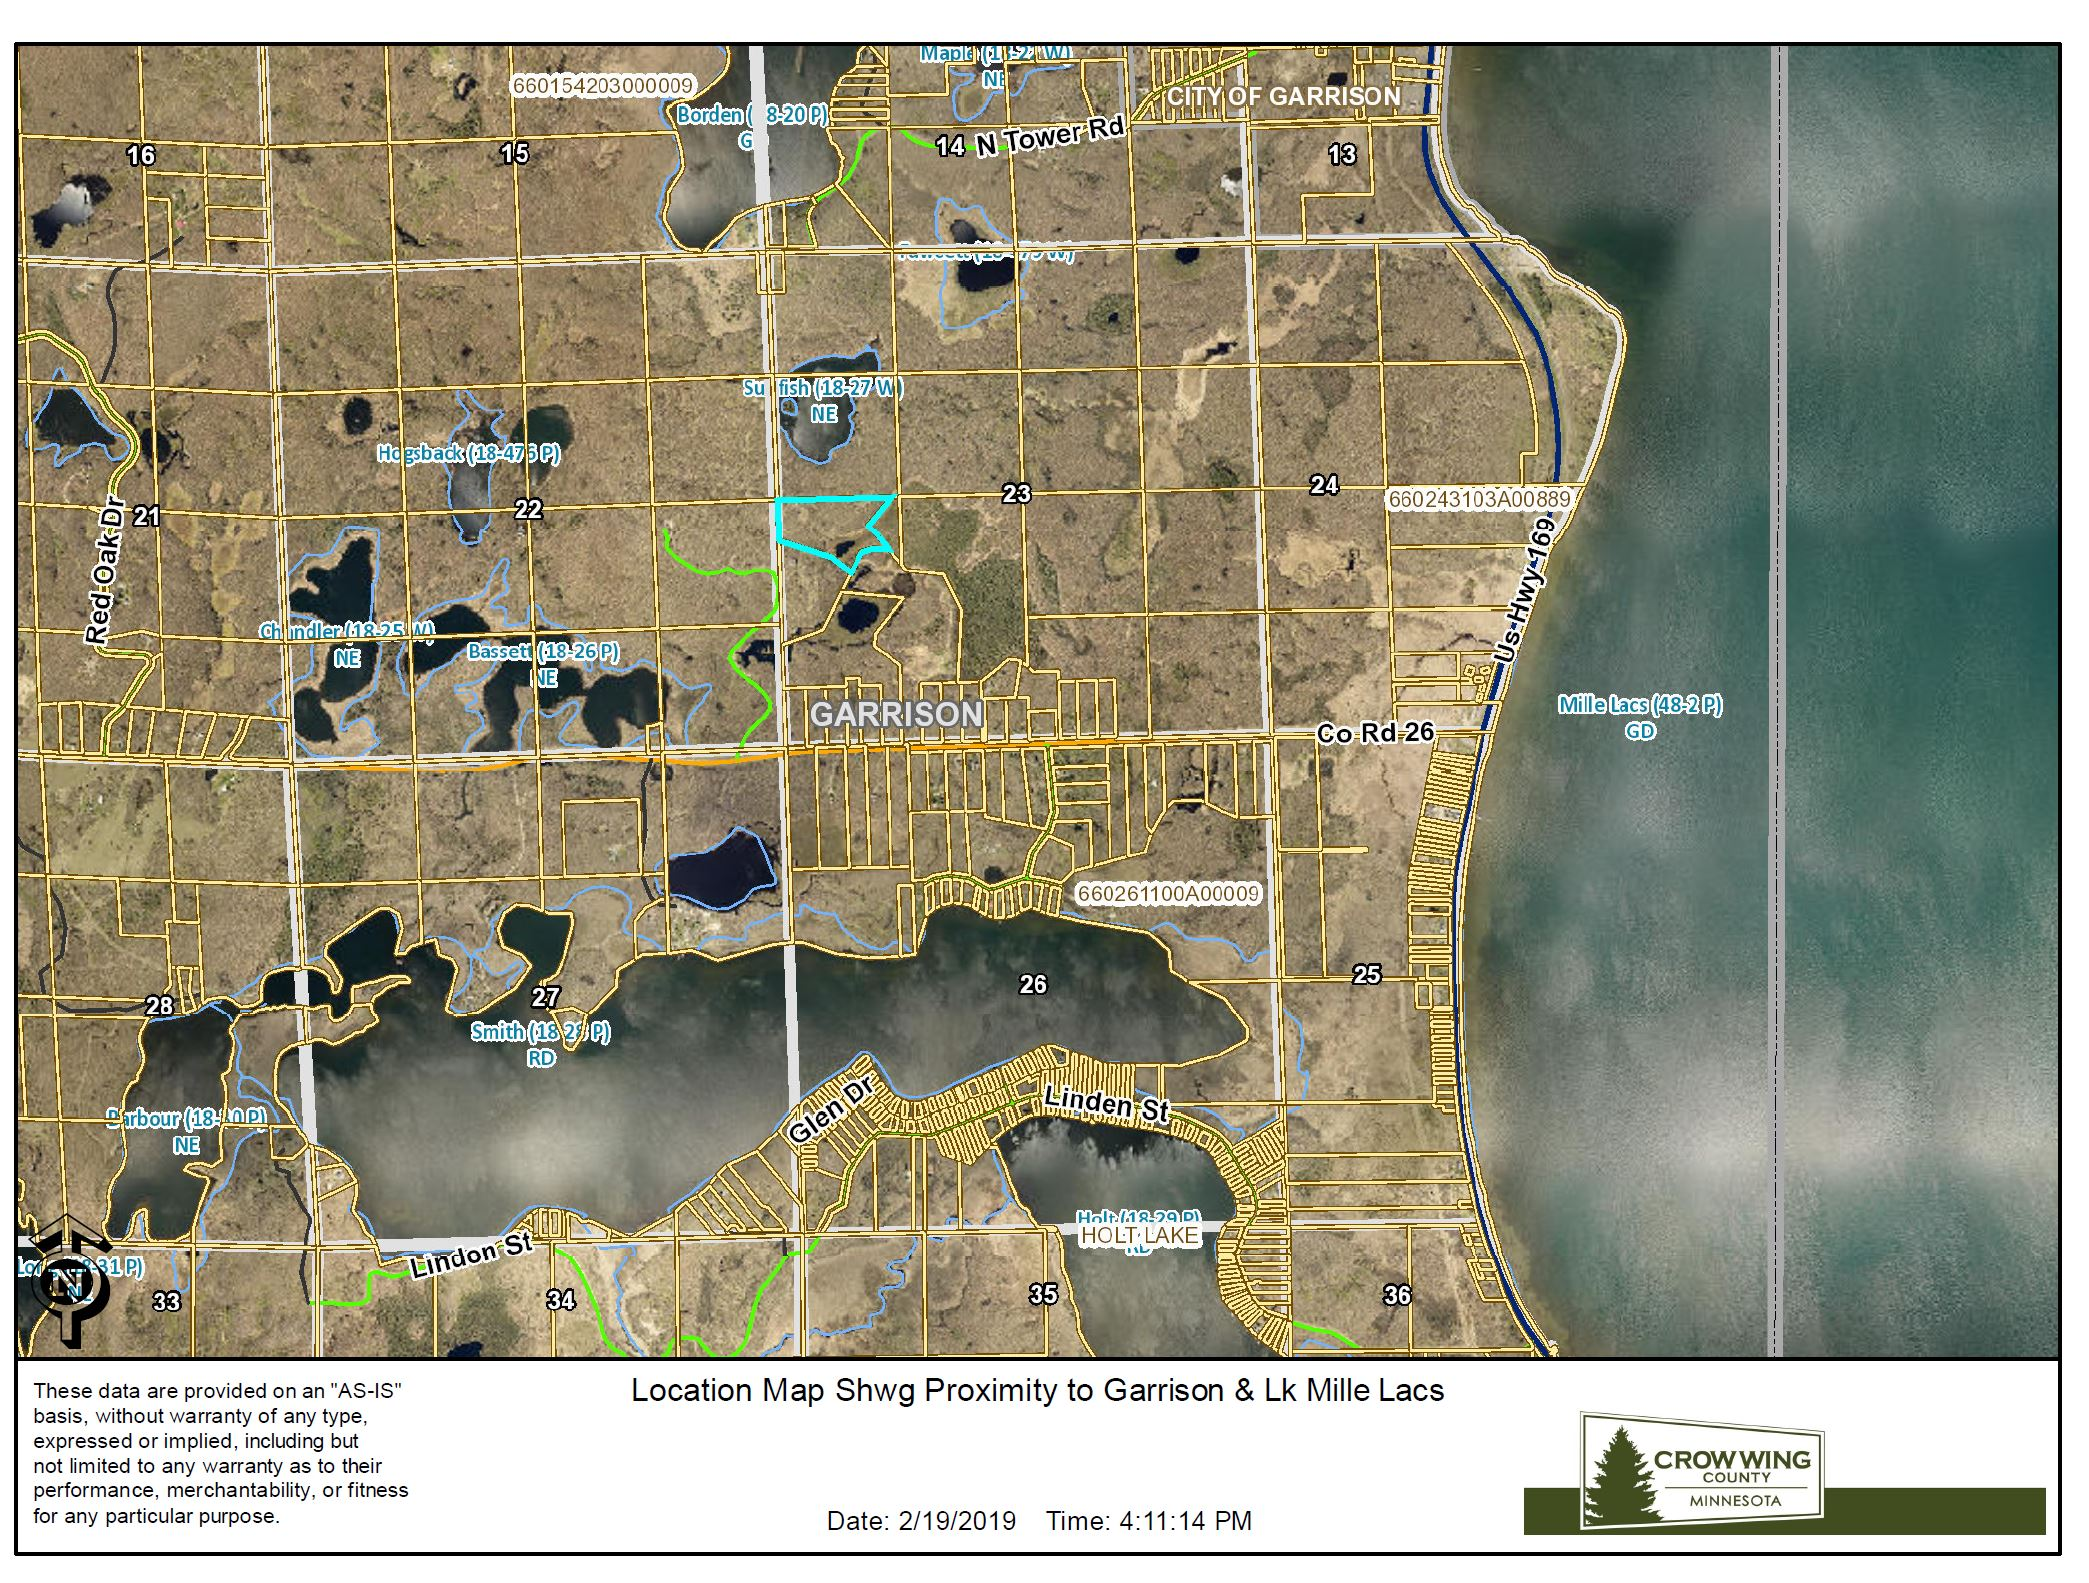 Location Map Shwg Proximity to Lk Mille Lacs<br>(Doc 5 of 8)